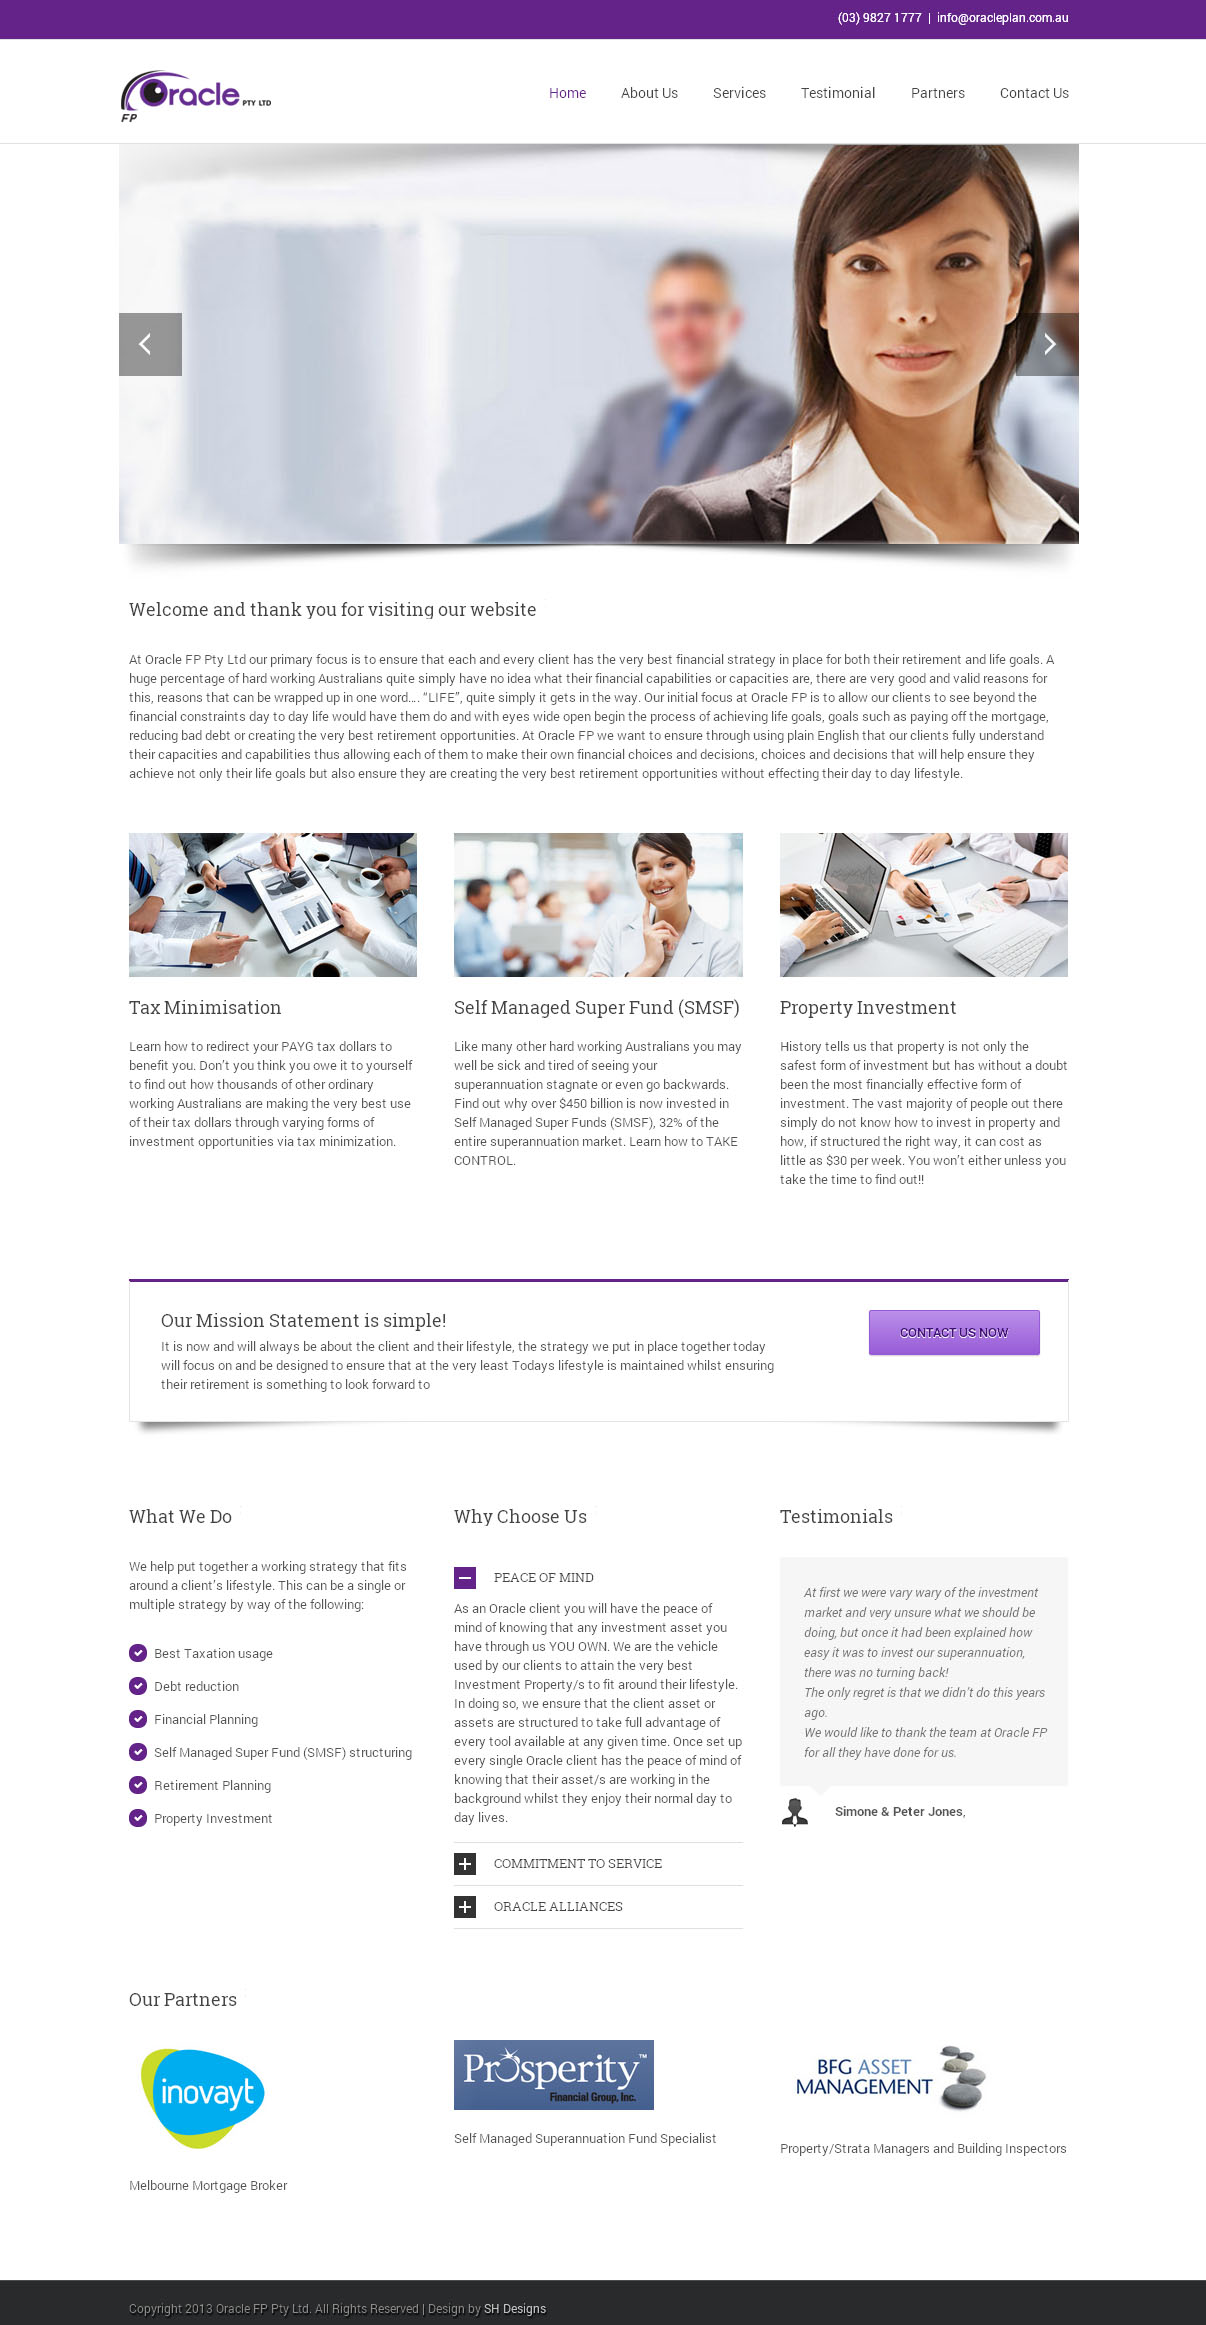 Oracle Financial Planning Design By SH Designs